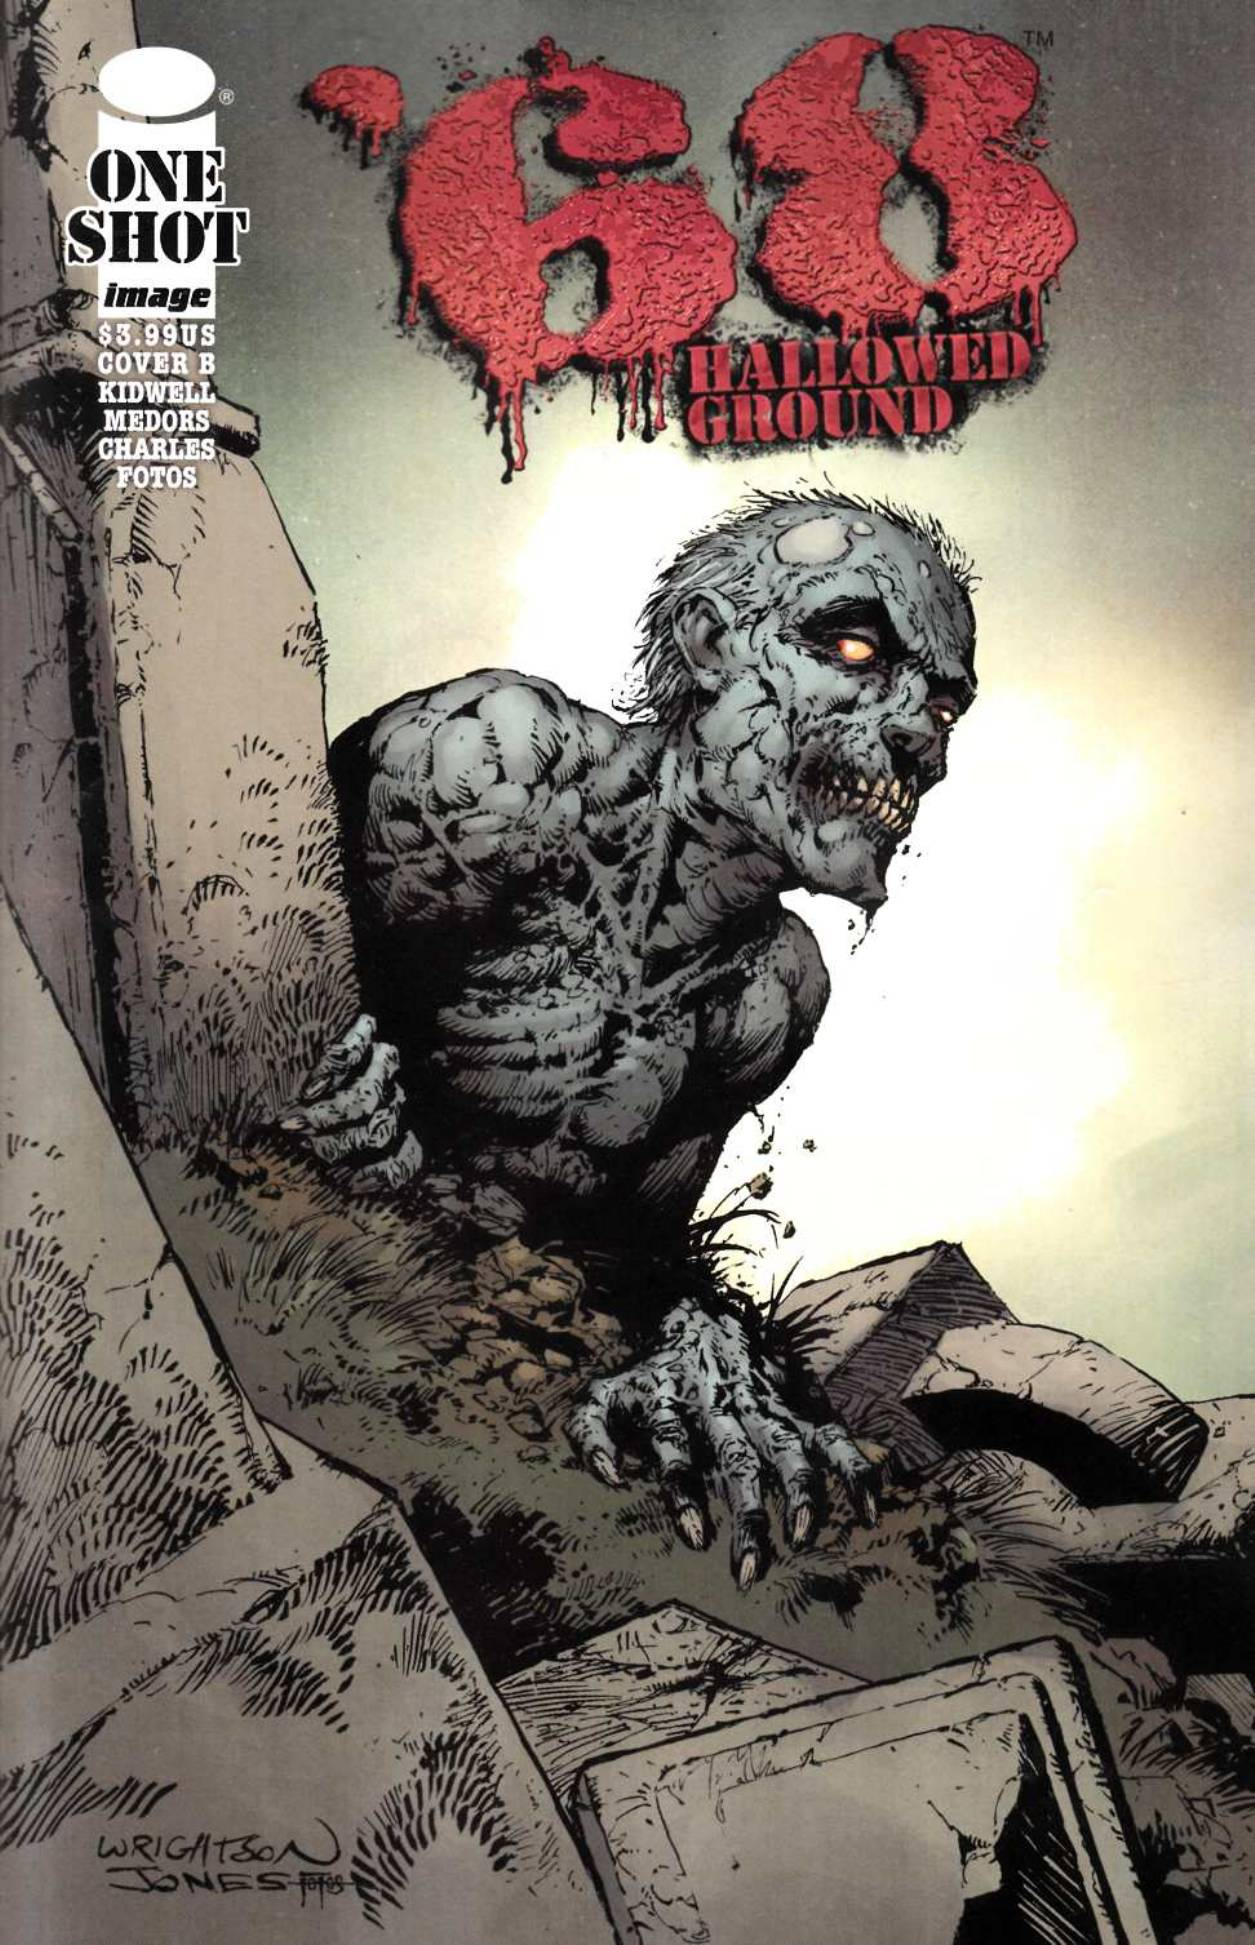 68 Hallowed Ground (One Shot) Cover B [Comic]